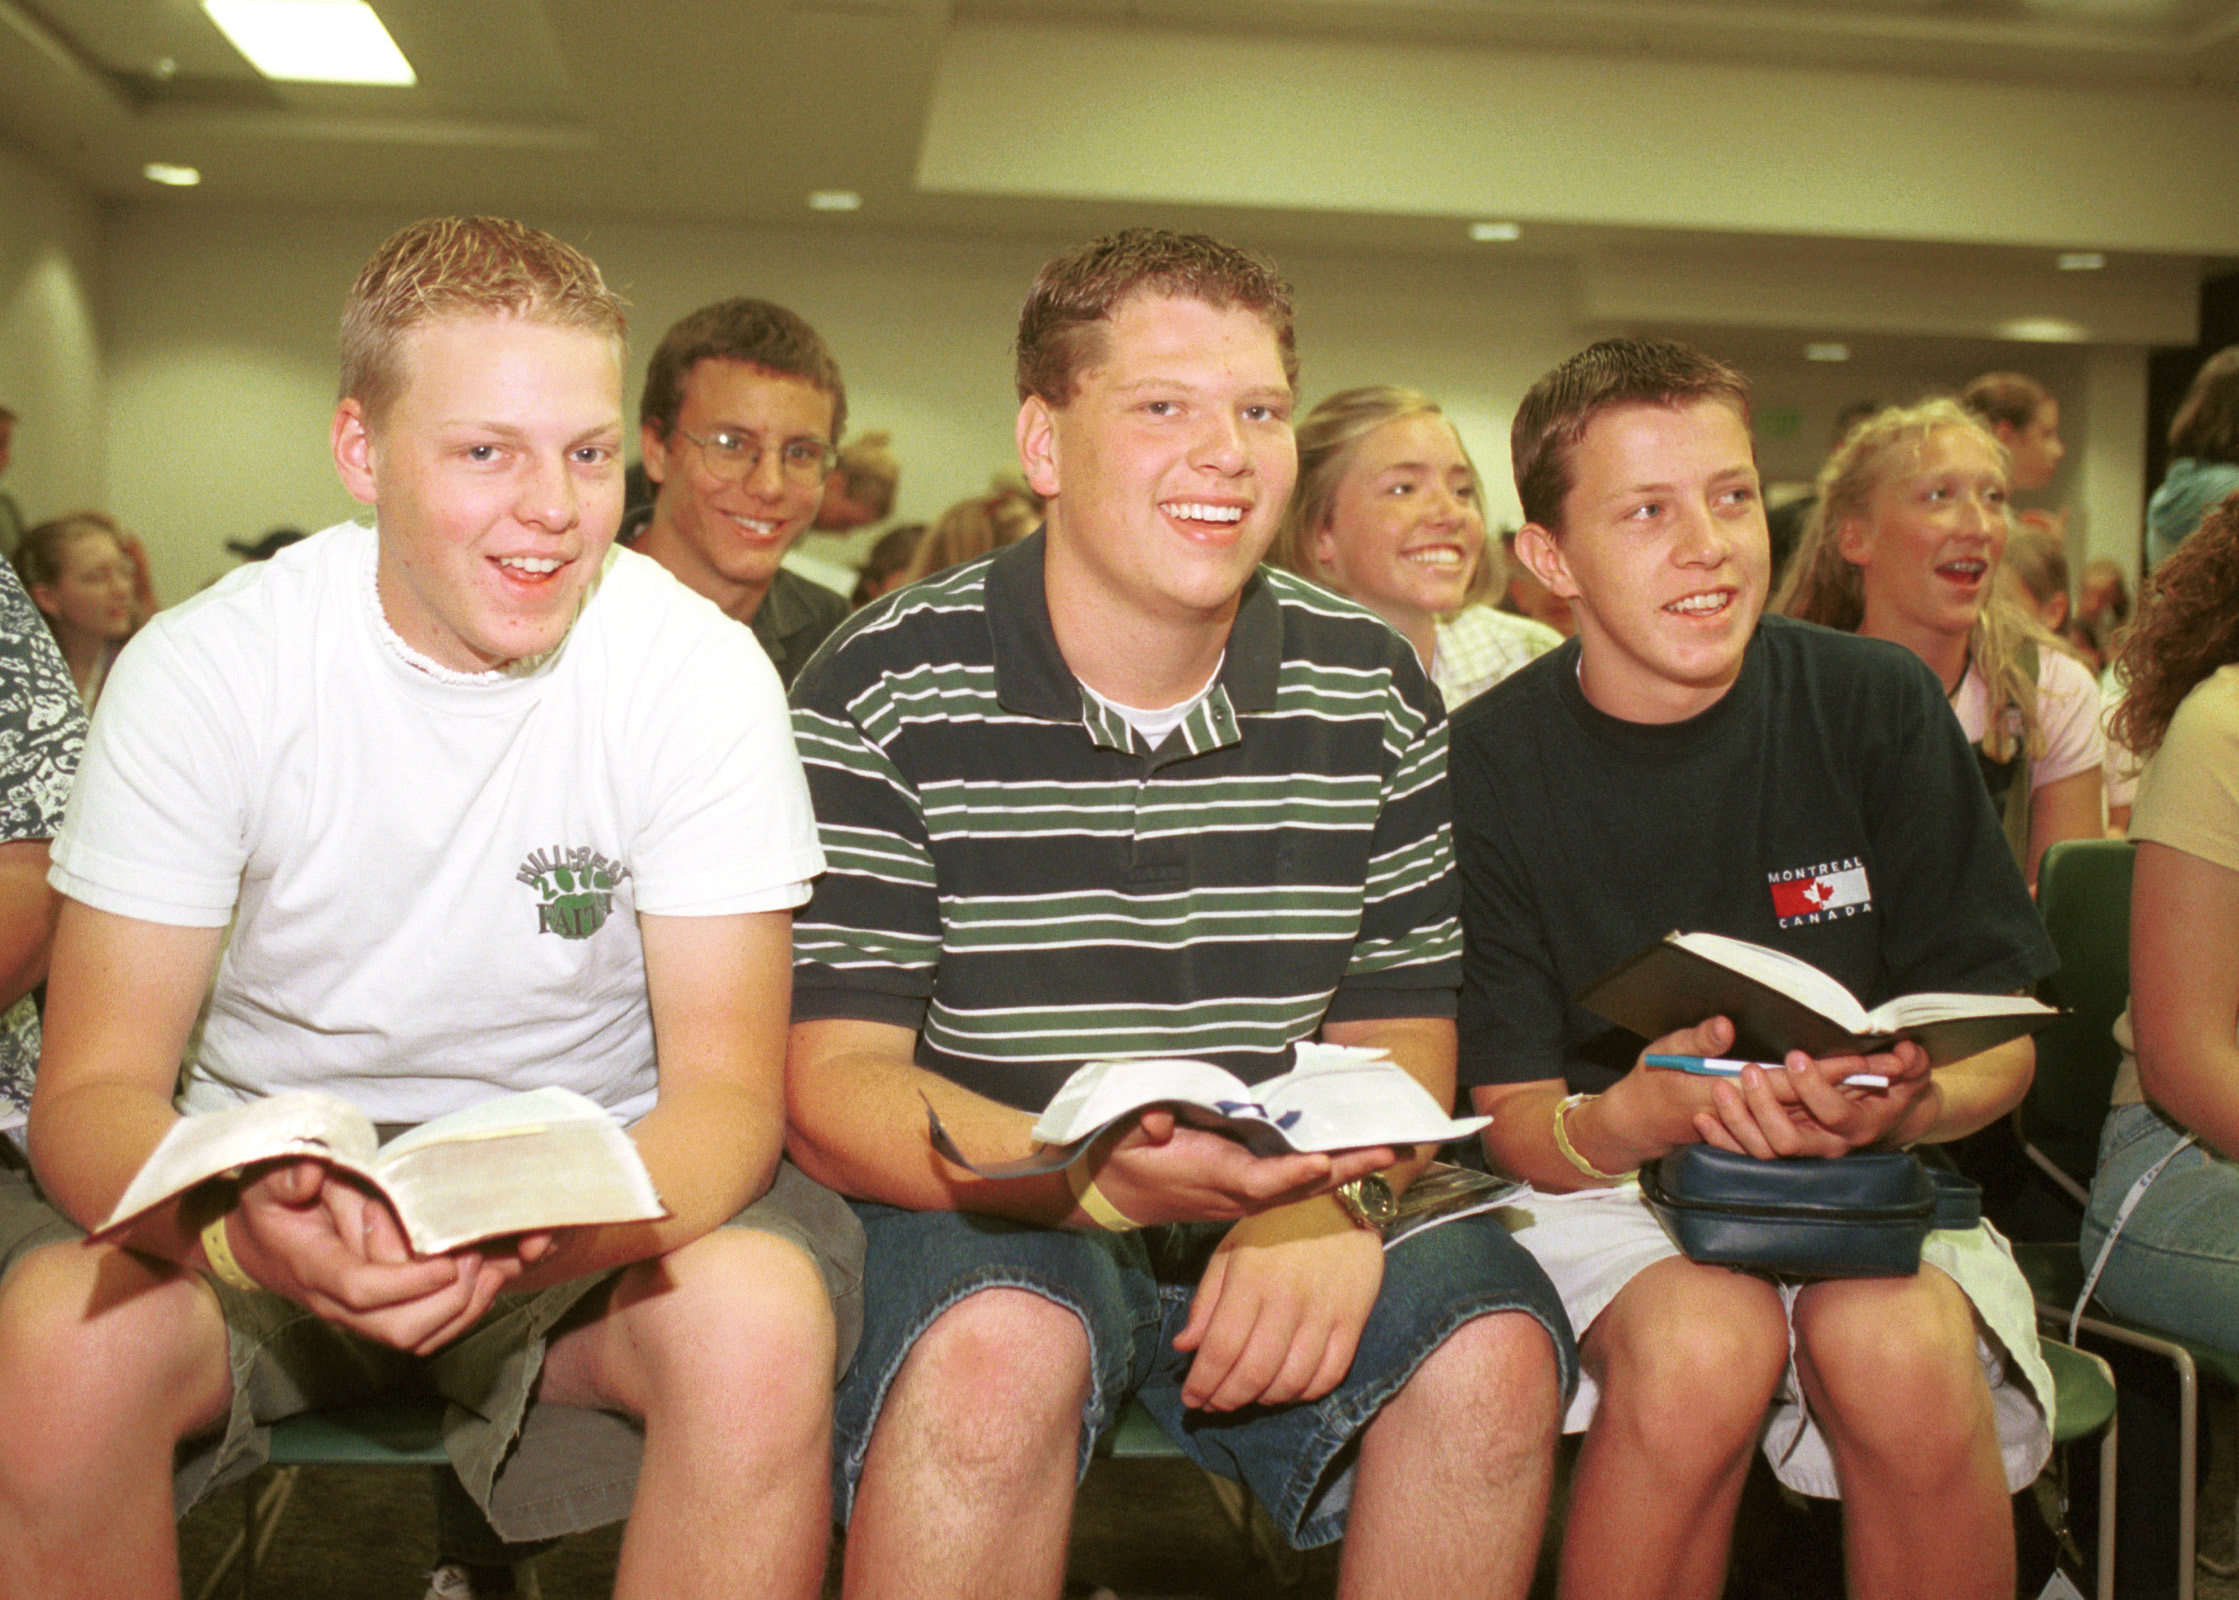 Young men sit with their scriptures open during a class at Especially for Youth.